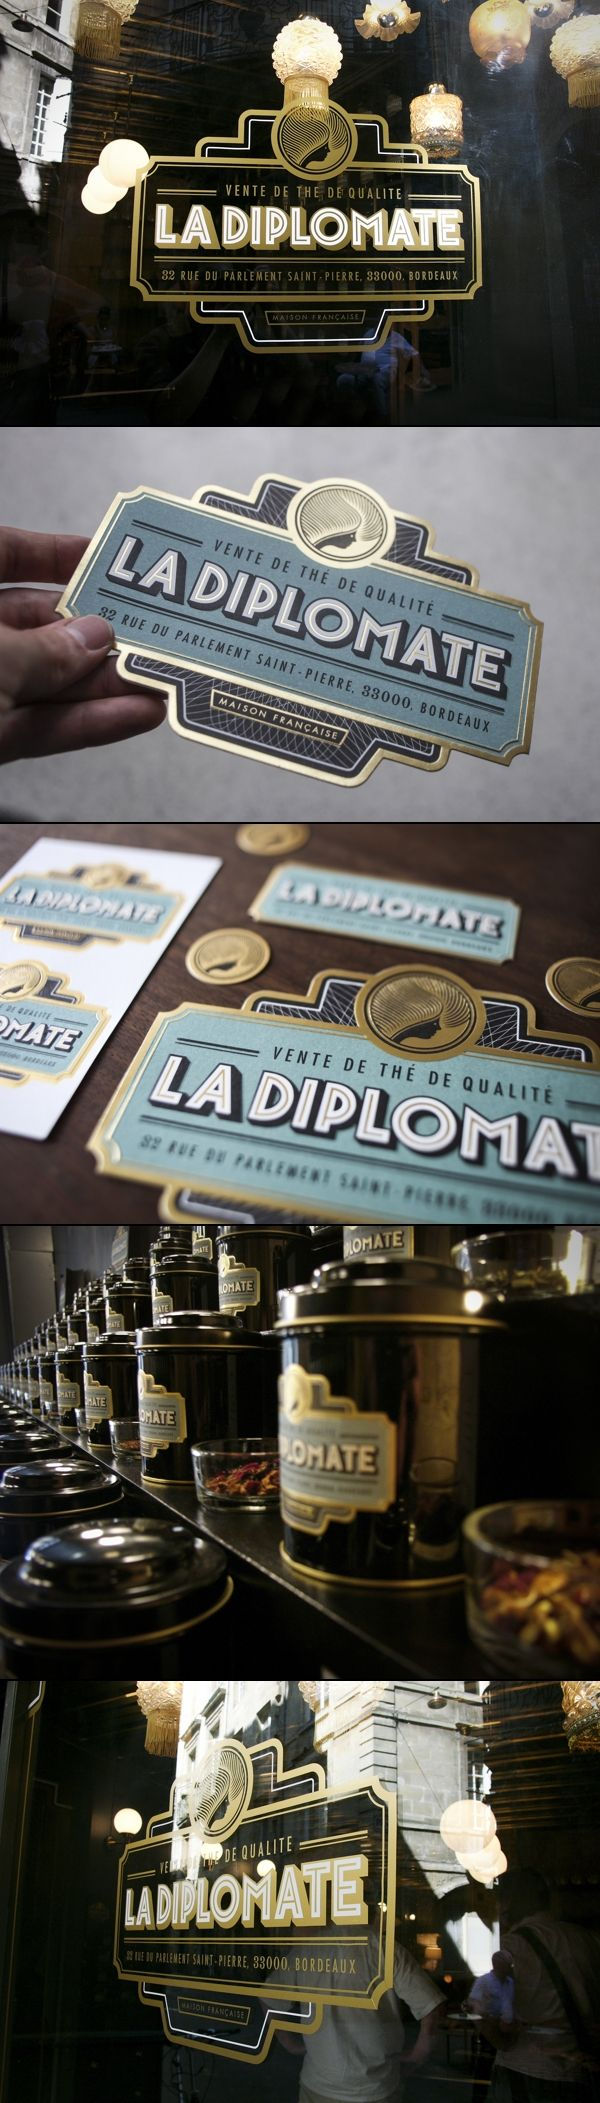 AR's notes: example of black & gold typography. Distinguished, classic, 1920 inspired. ==  la diplomate